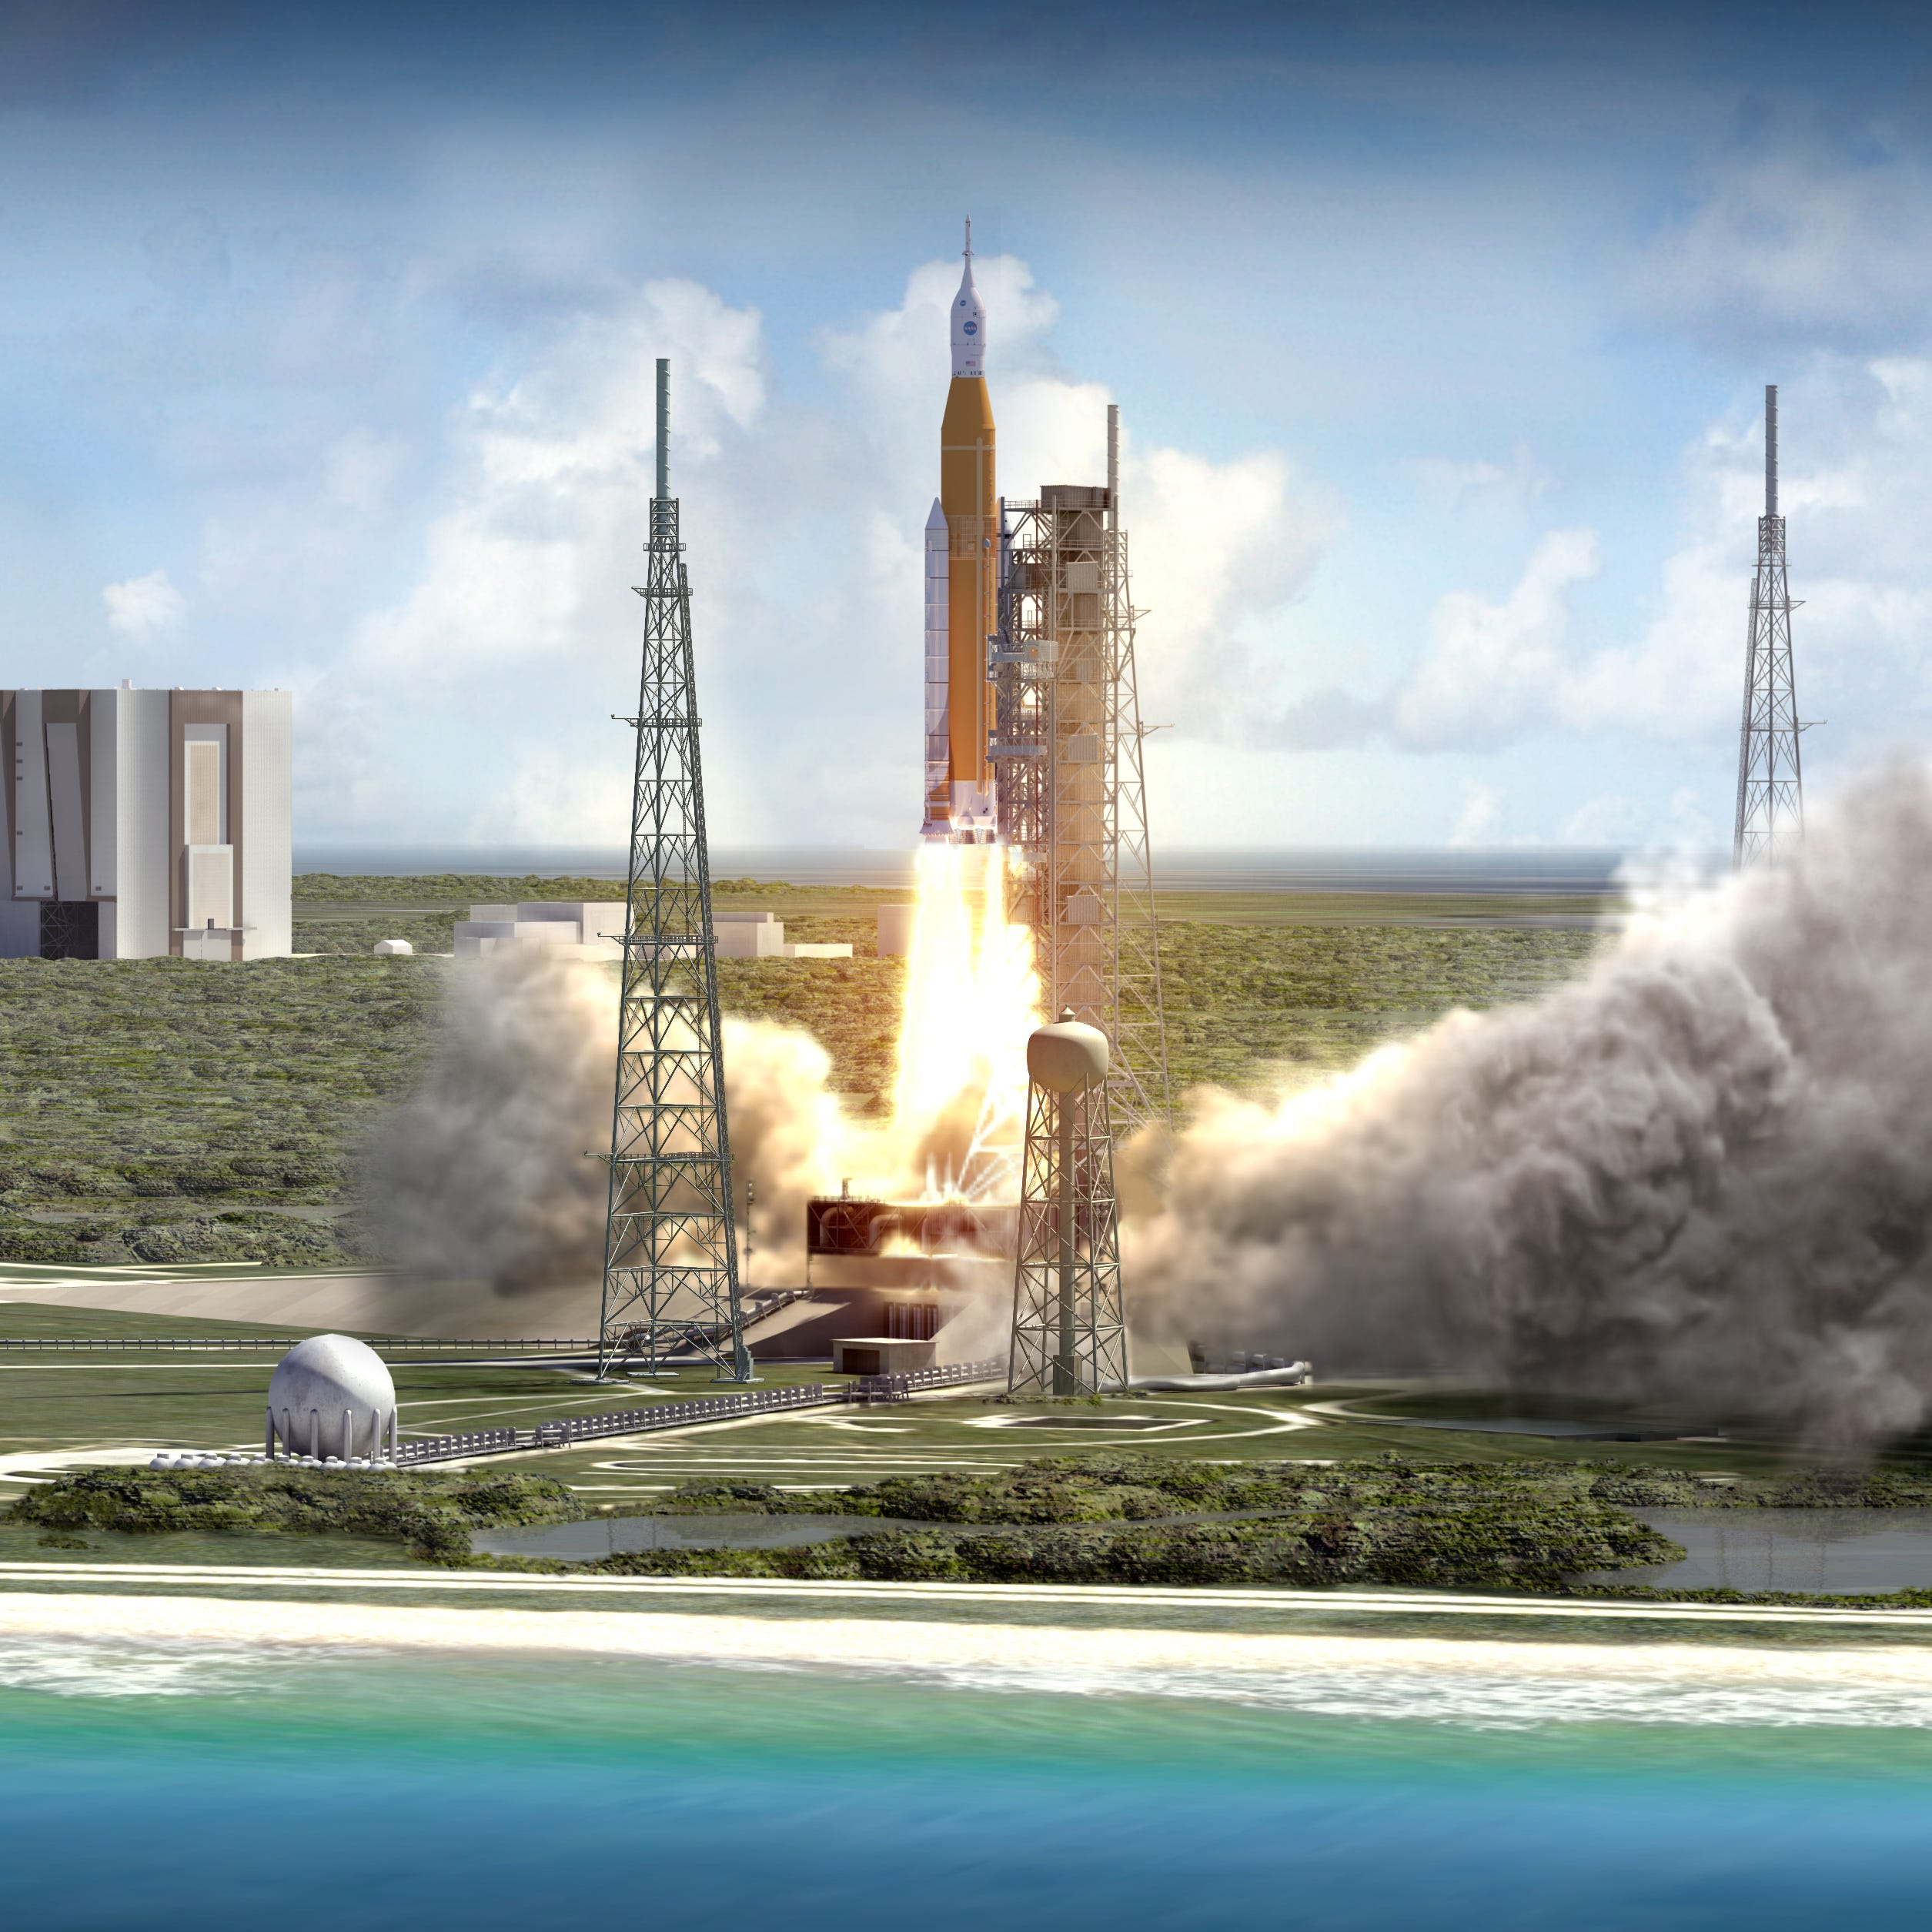 Scathing NASA report blasts SLS rocket and Boeing overruns; first launch likely to be delayed